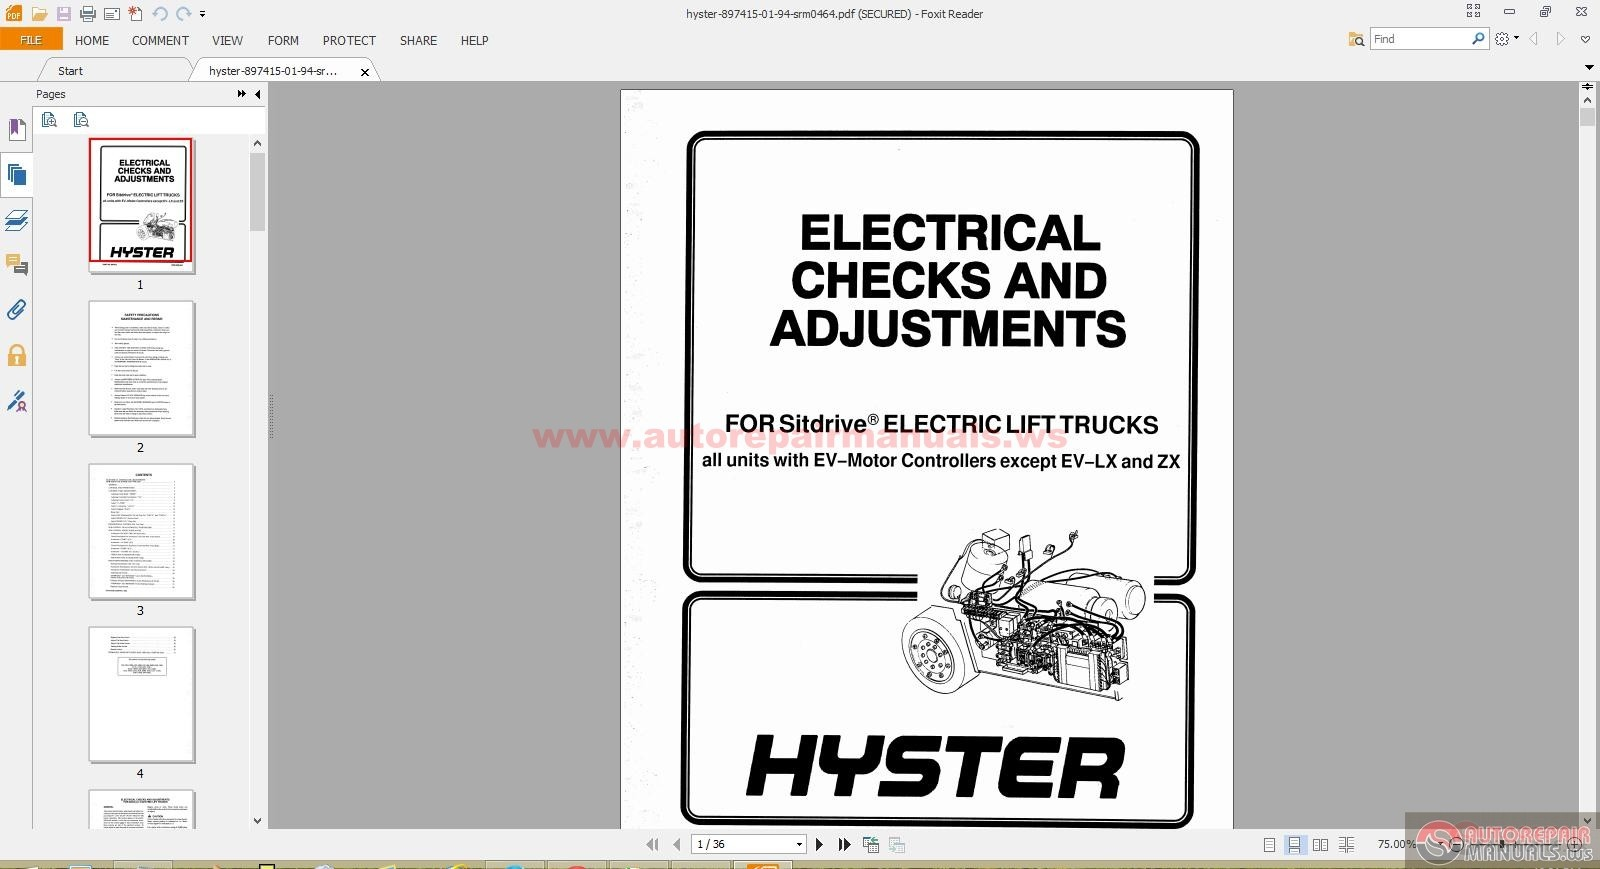 hyster 60 forklift wiring diagram 94 ford ranger fuse box free auto repair manual parts and